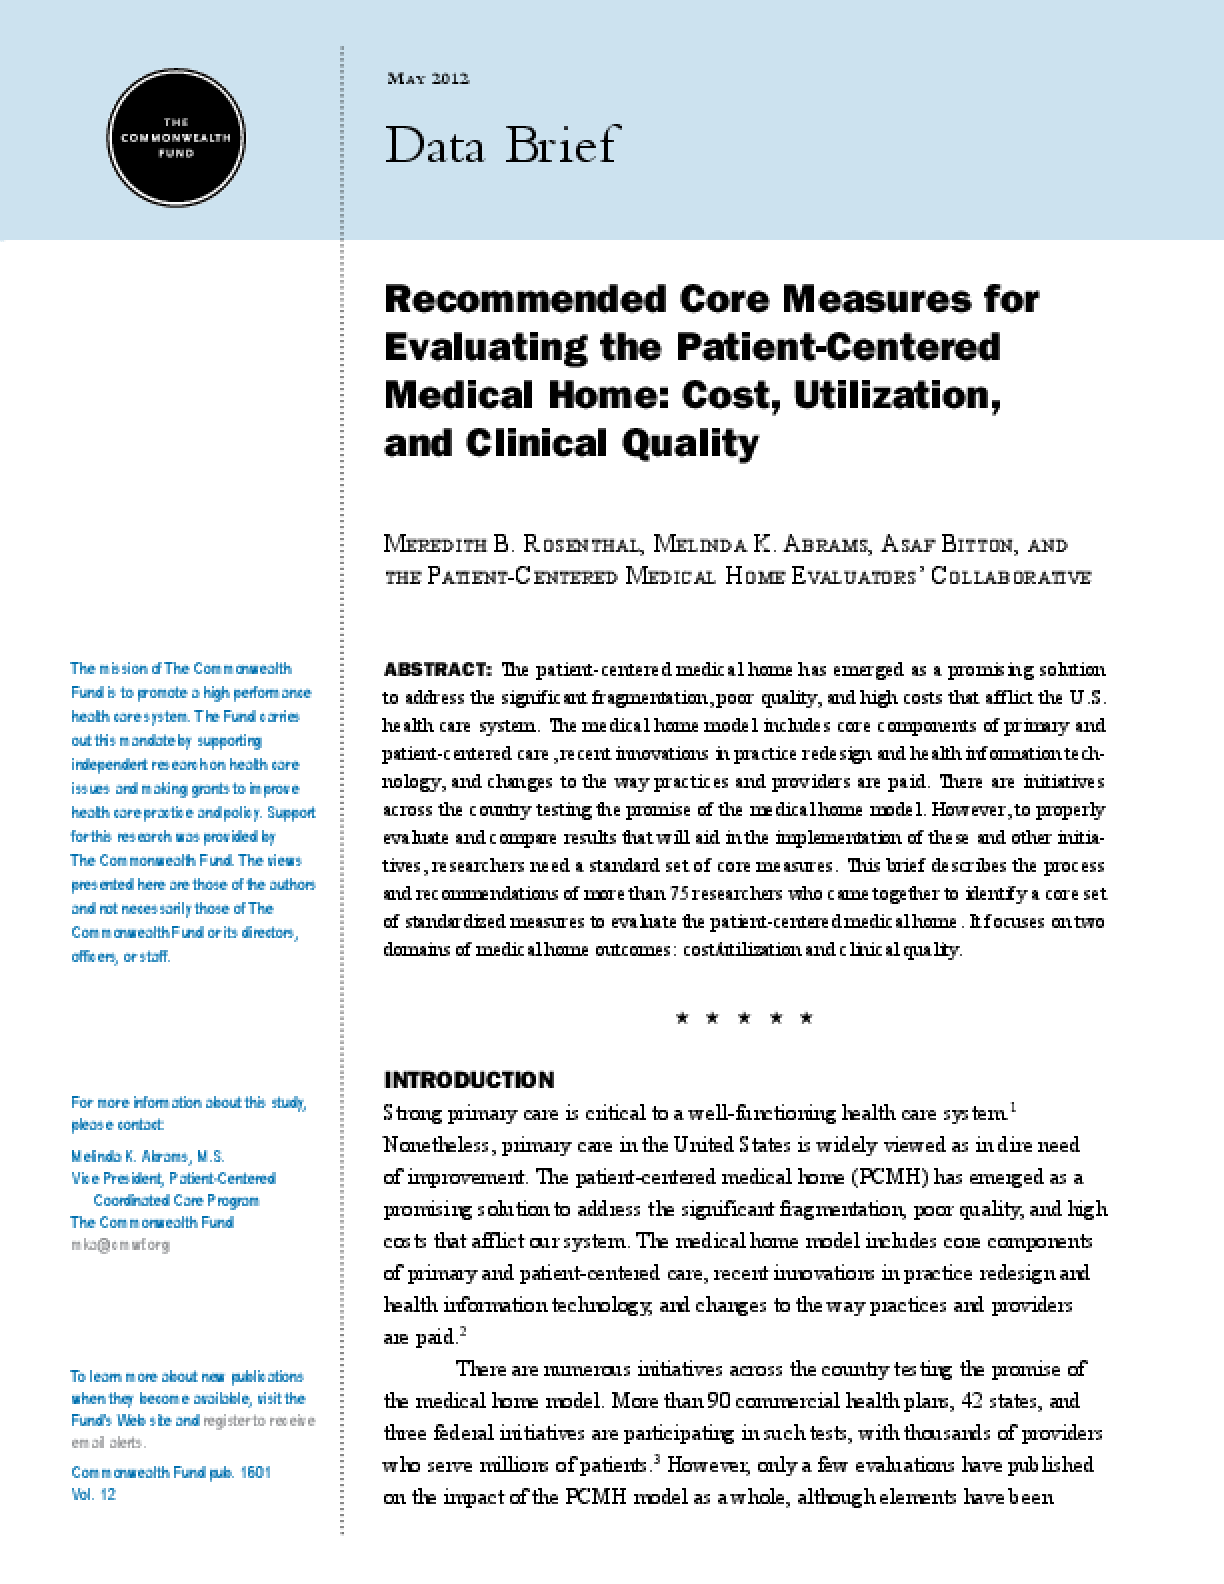 Recommended Core Measures for Evaluating the Patient-Centered Medical Home: Cost, Utilization, and Clinical Quality